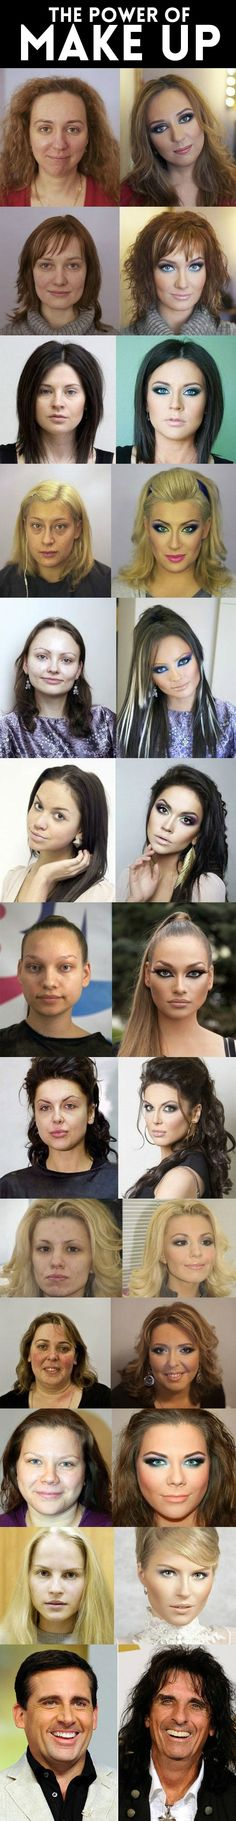 """The great power of makeup… or as I call it """"false advertising!"""""""